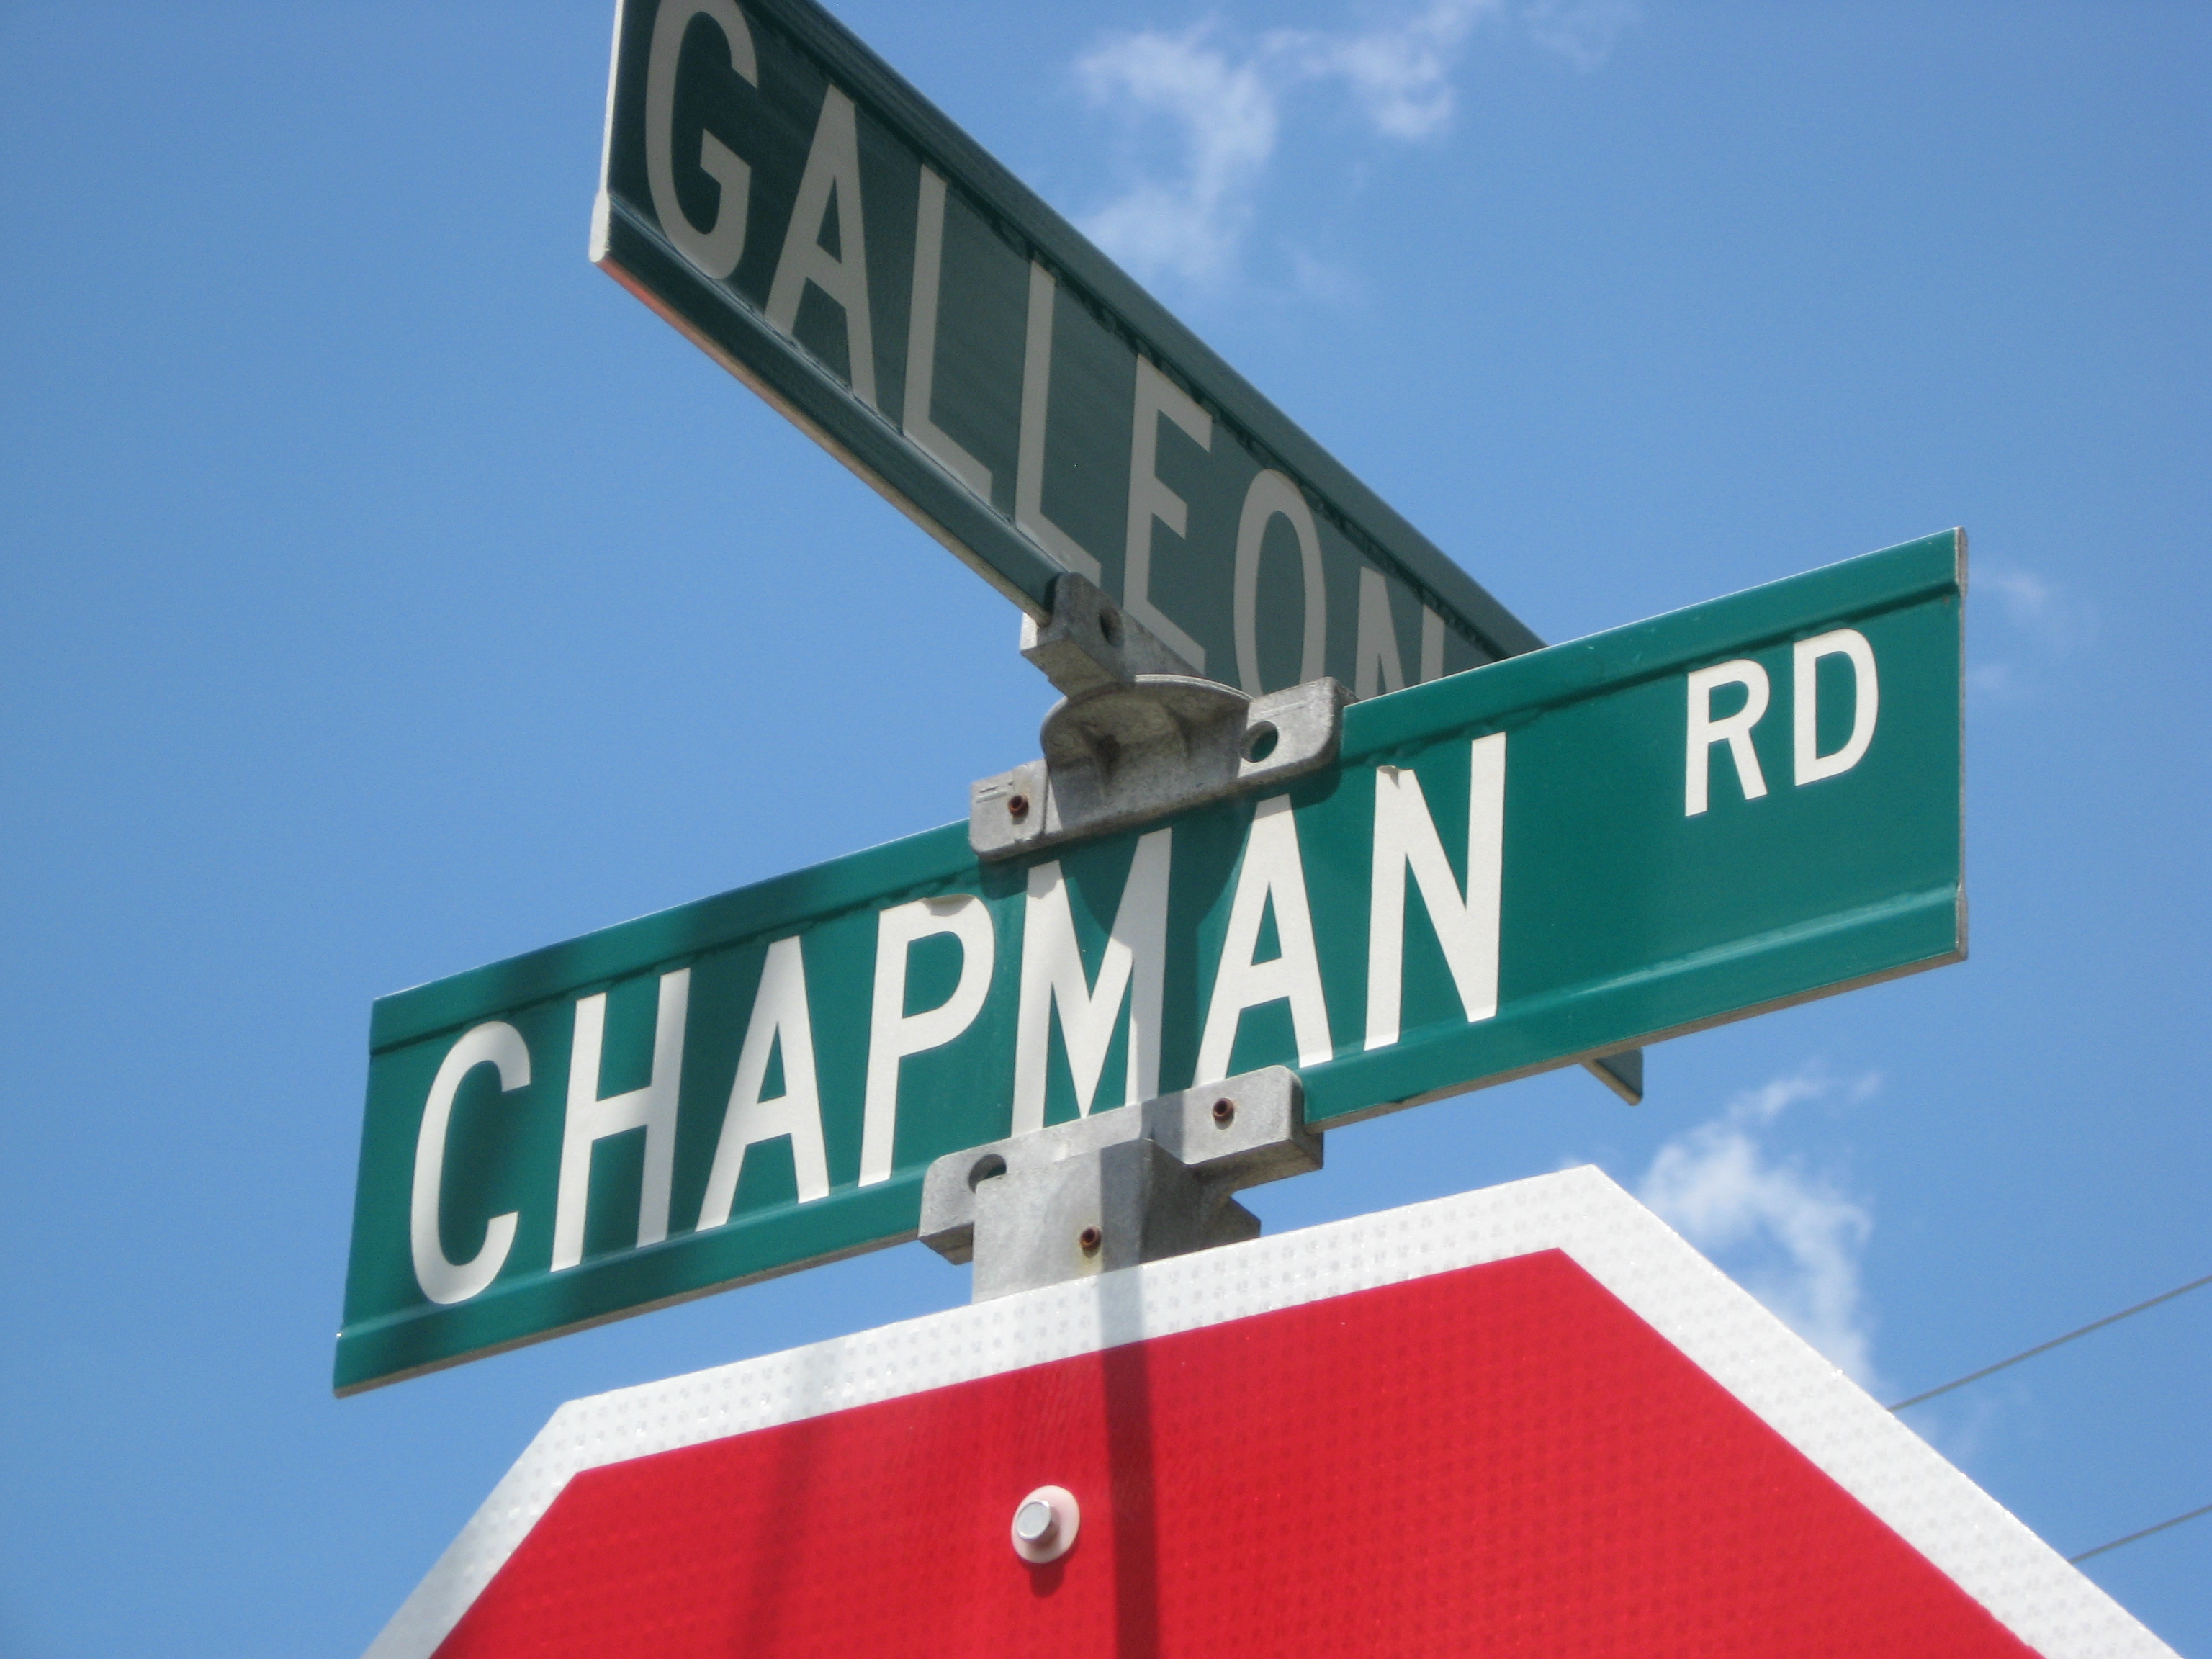 street names wwwpixsharkcom images galleries with a